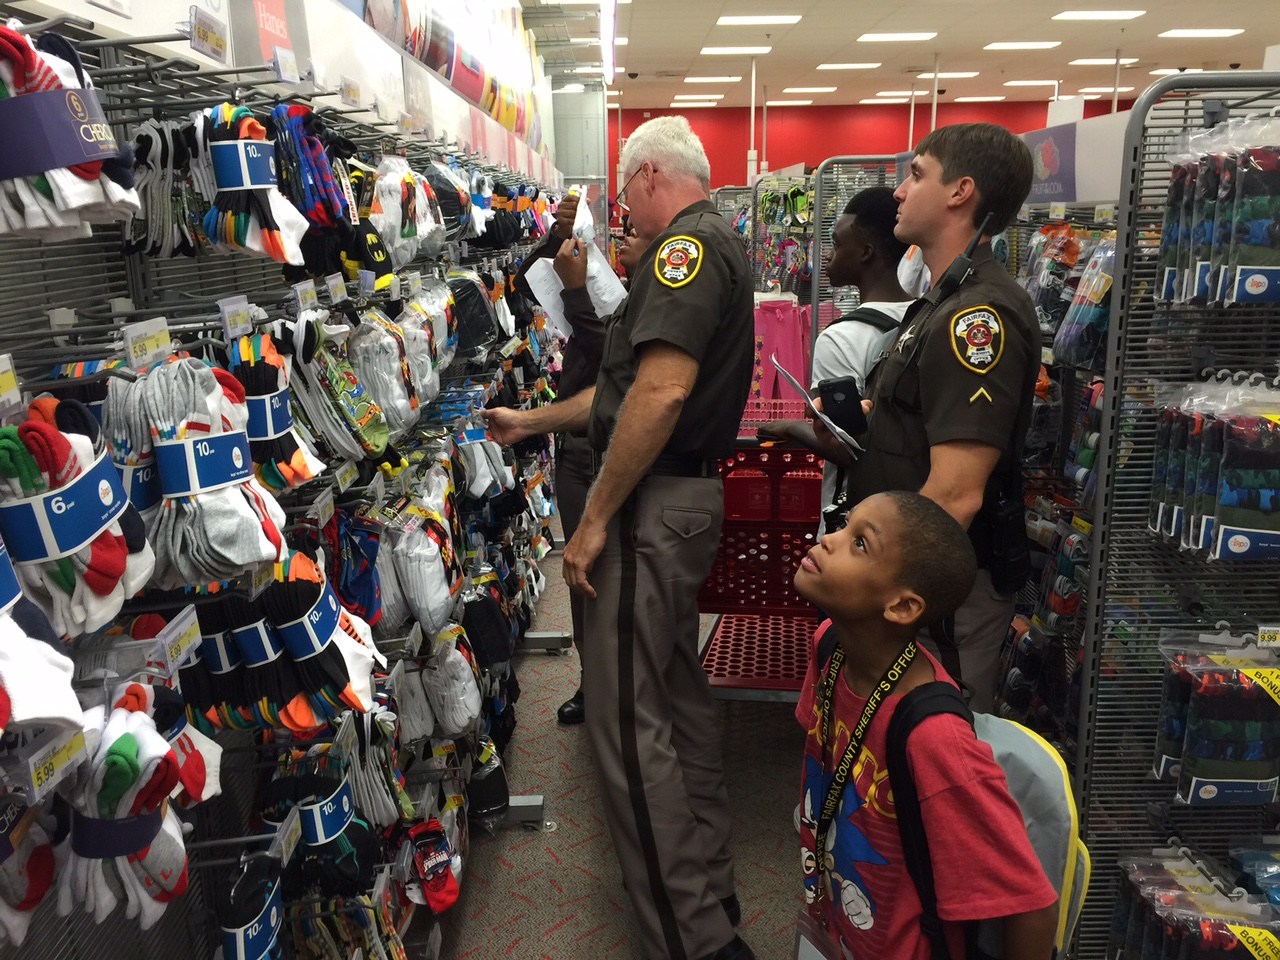 Pictured with his helpers, Captain Sean Whitmore and PFC Ulsh, rising fourth-grader Dontay Scott like movie themes -- he chose 'Star Wars' high-top sneakers and socks depicting Minions characters. (WTOP/Kristi King)